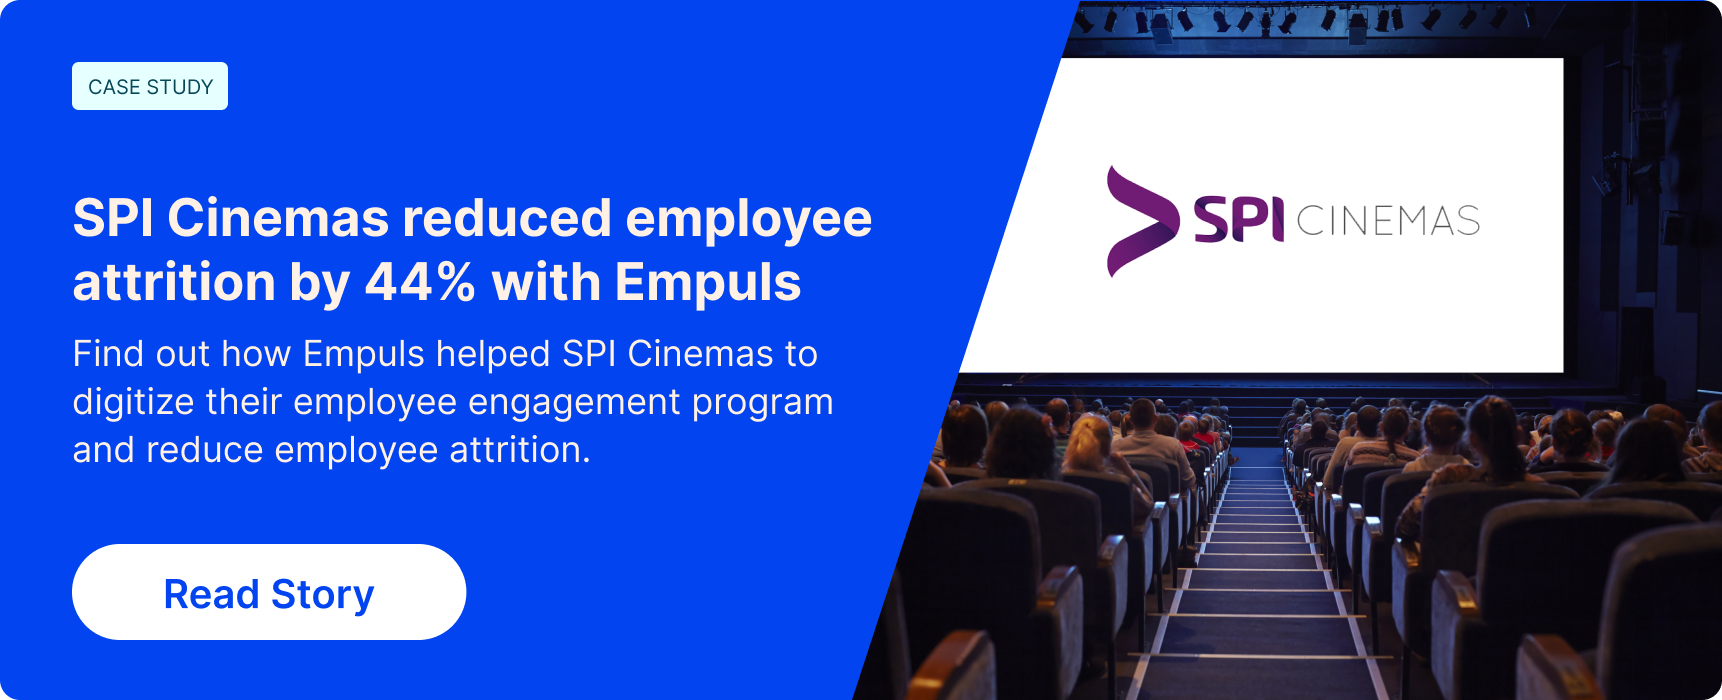 SPI Cinemas Reduces Attrition Rate by 44%